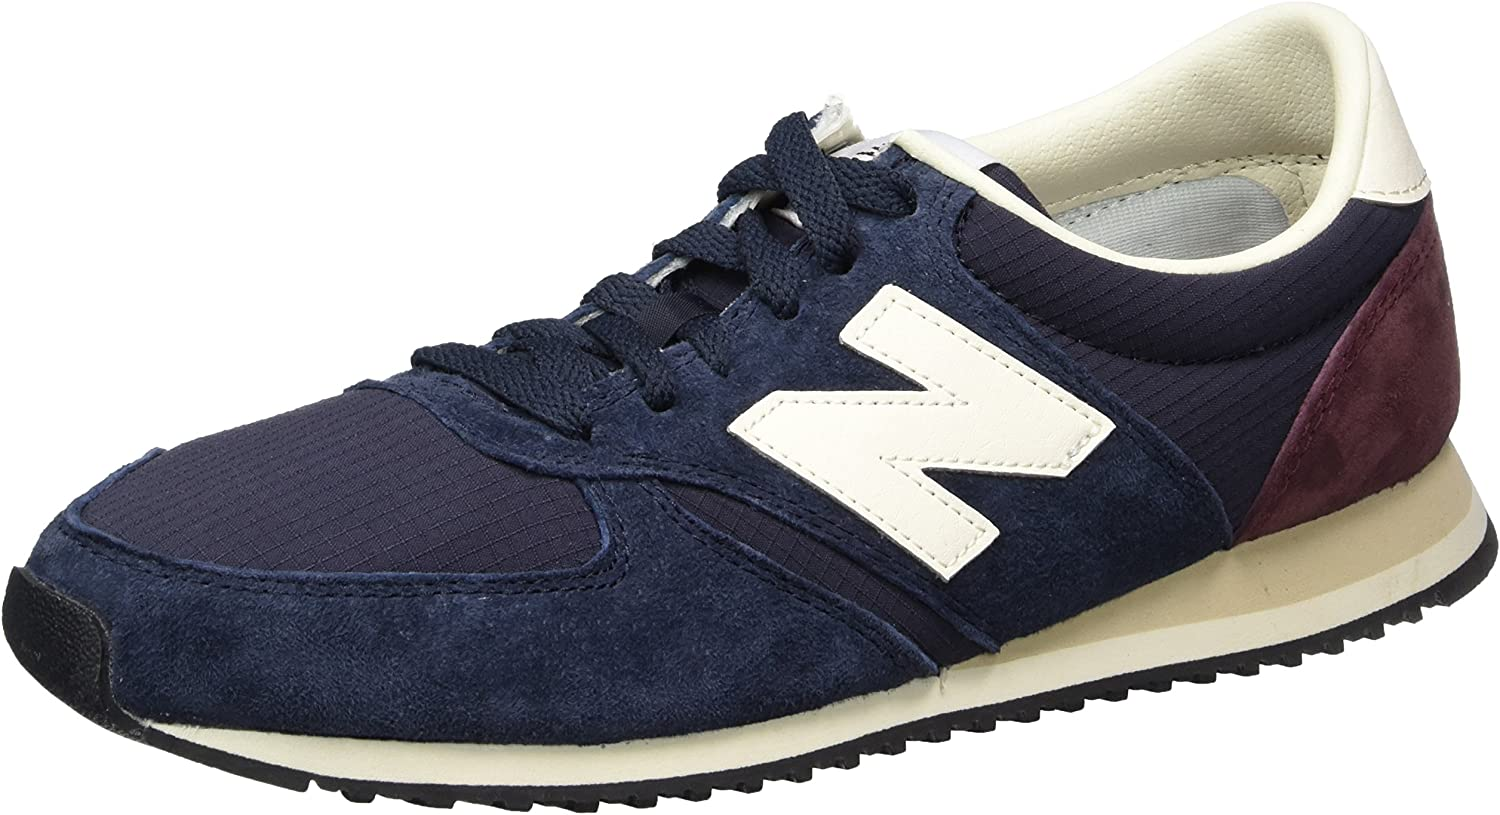 New Balance U420v1, Men's Low-Top Sneakers